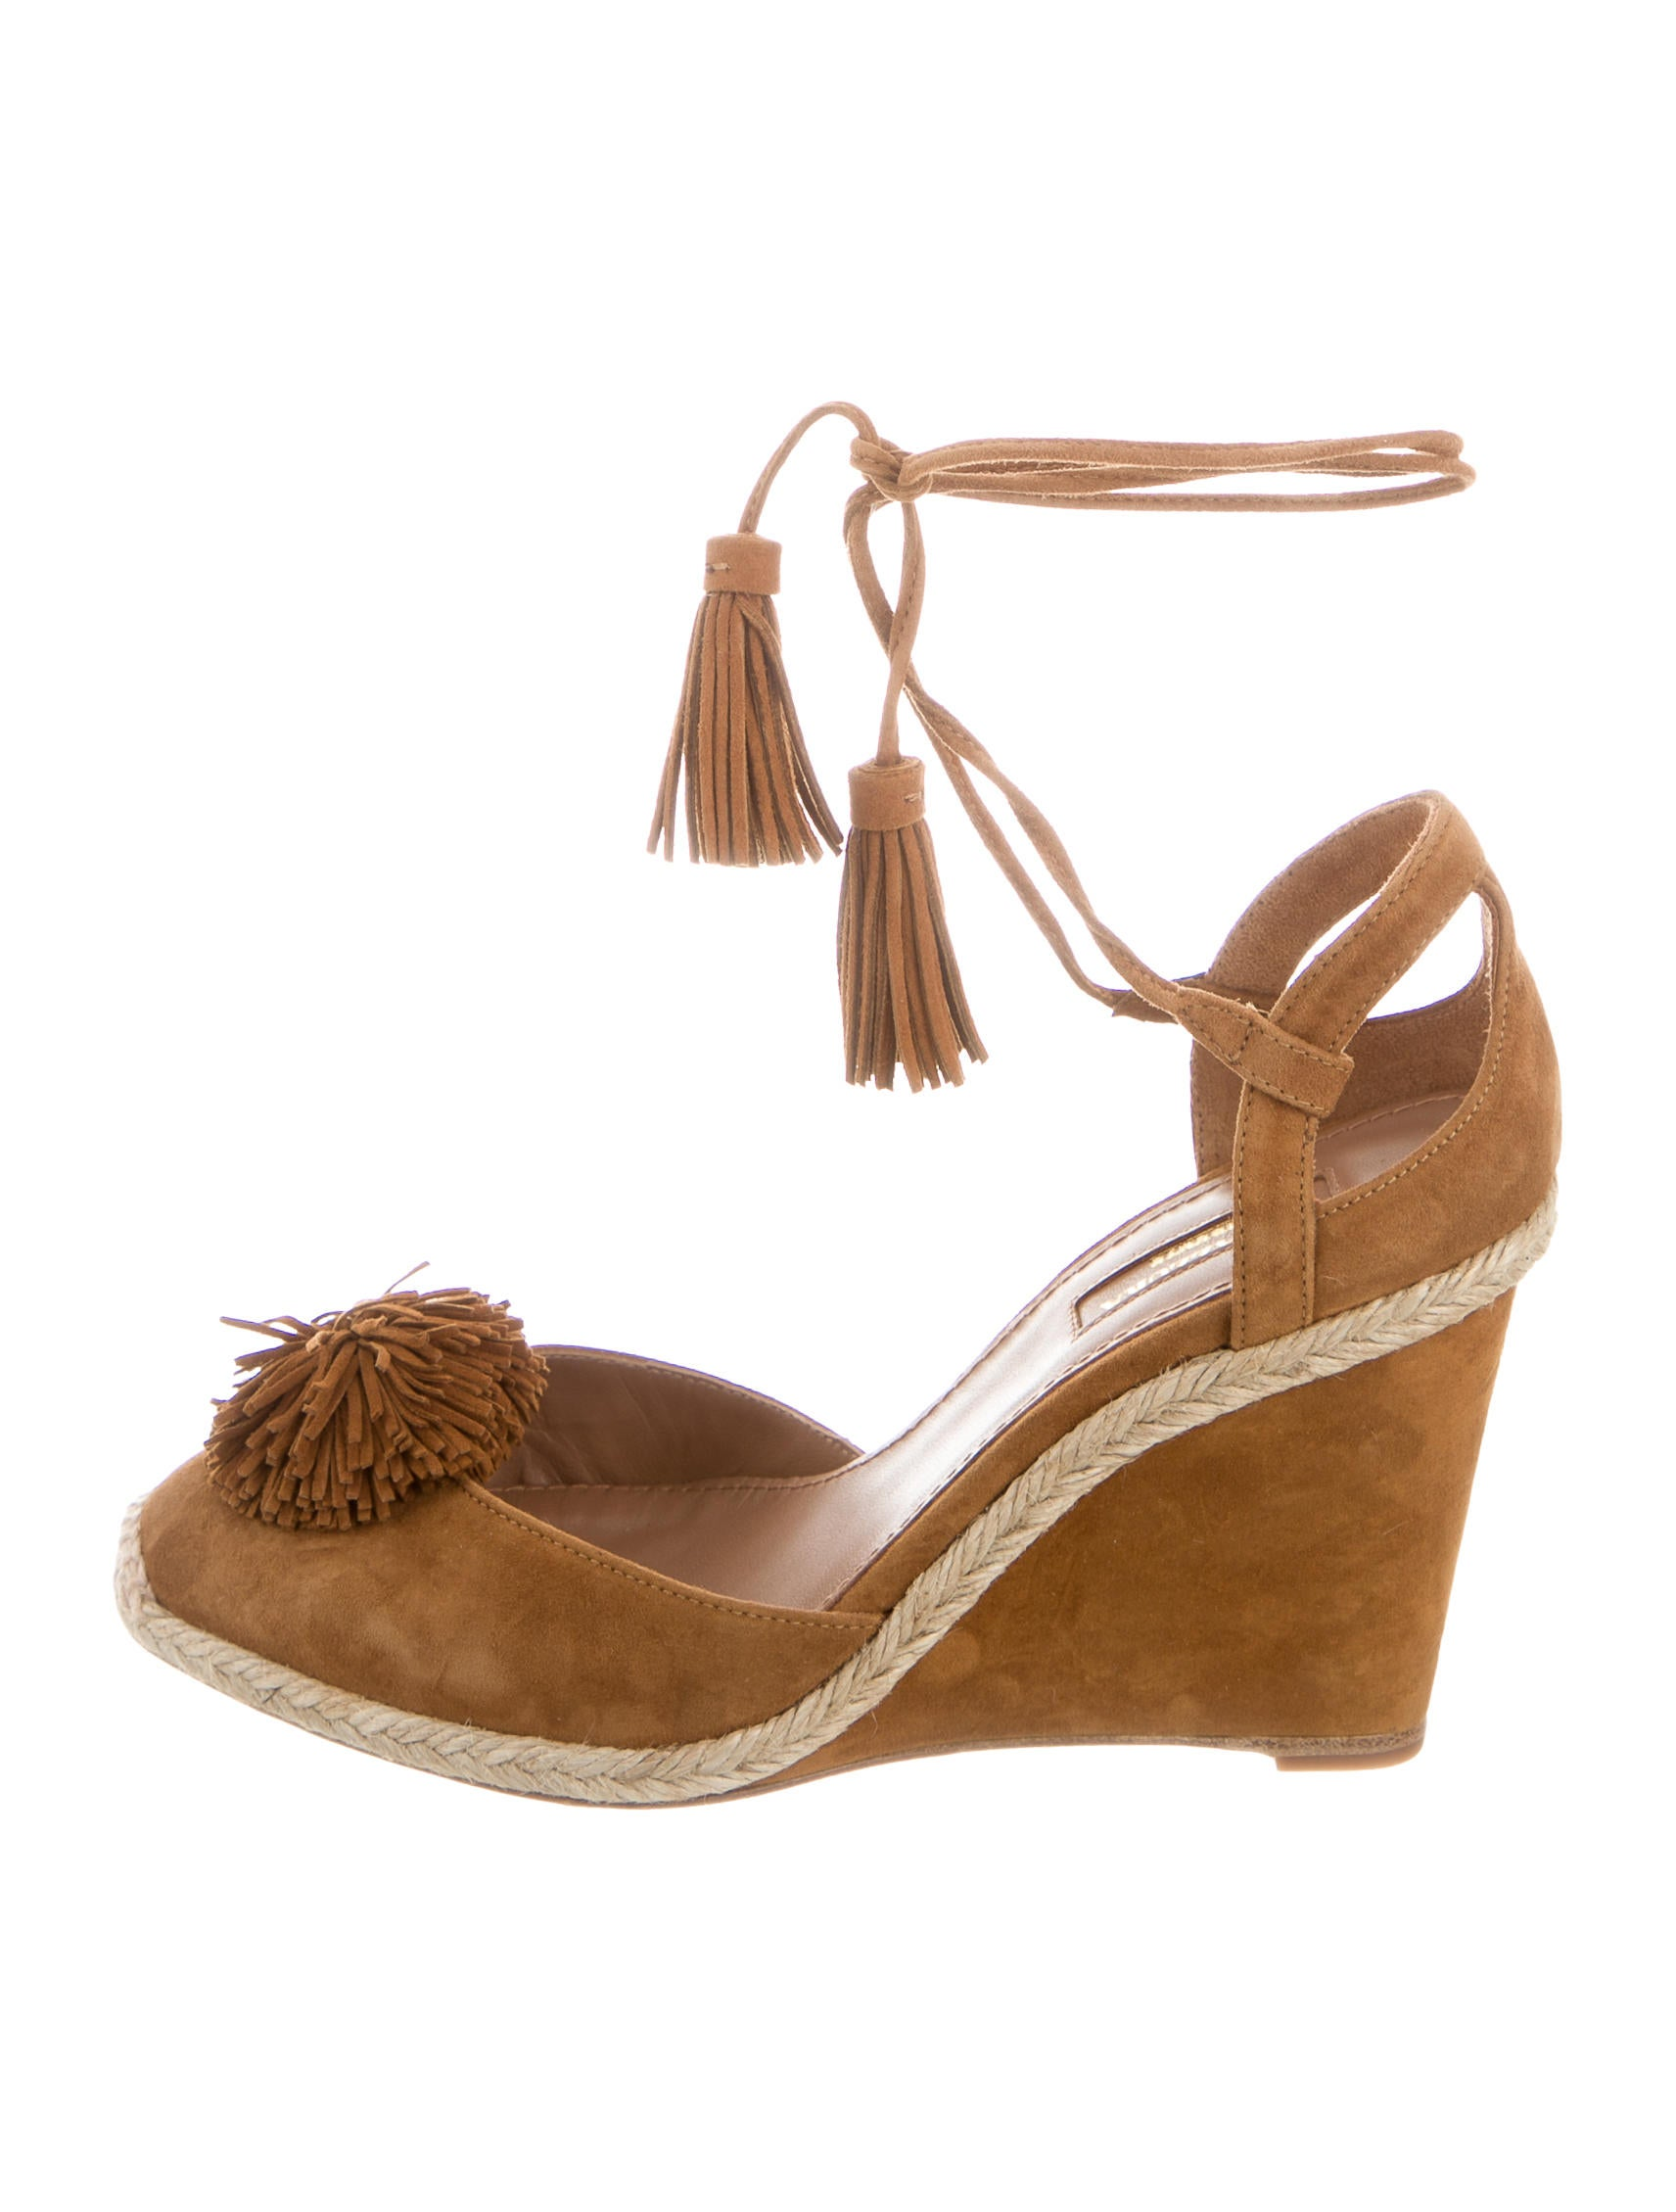 Aquazzura Sunshine Fringe-Accented Wedges w/ Tags sast supply cheap price comfortable online pictures cheap online MXq5vPGF4